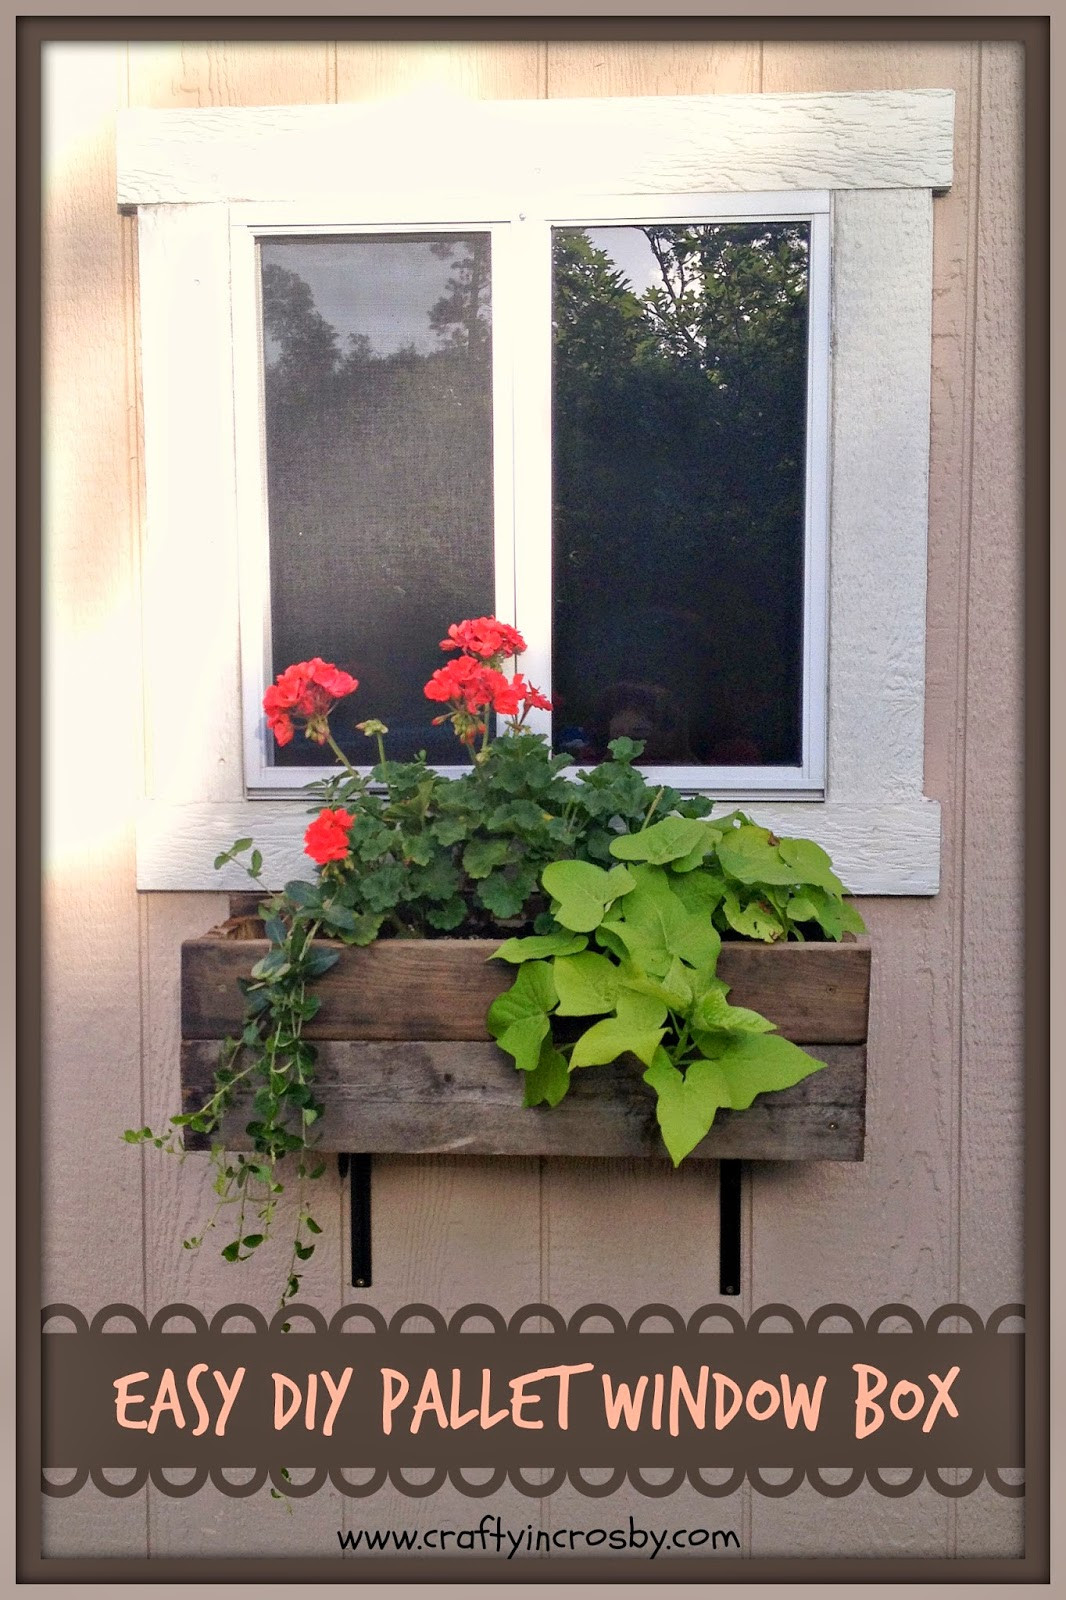 Best ideas about Easy DIY Window Boxes . Save or Pin Crafty in Crosby Easy DIY Pallet Window Box Now.